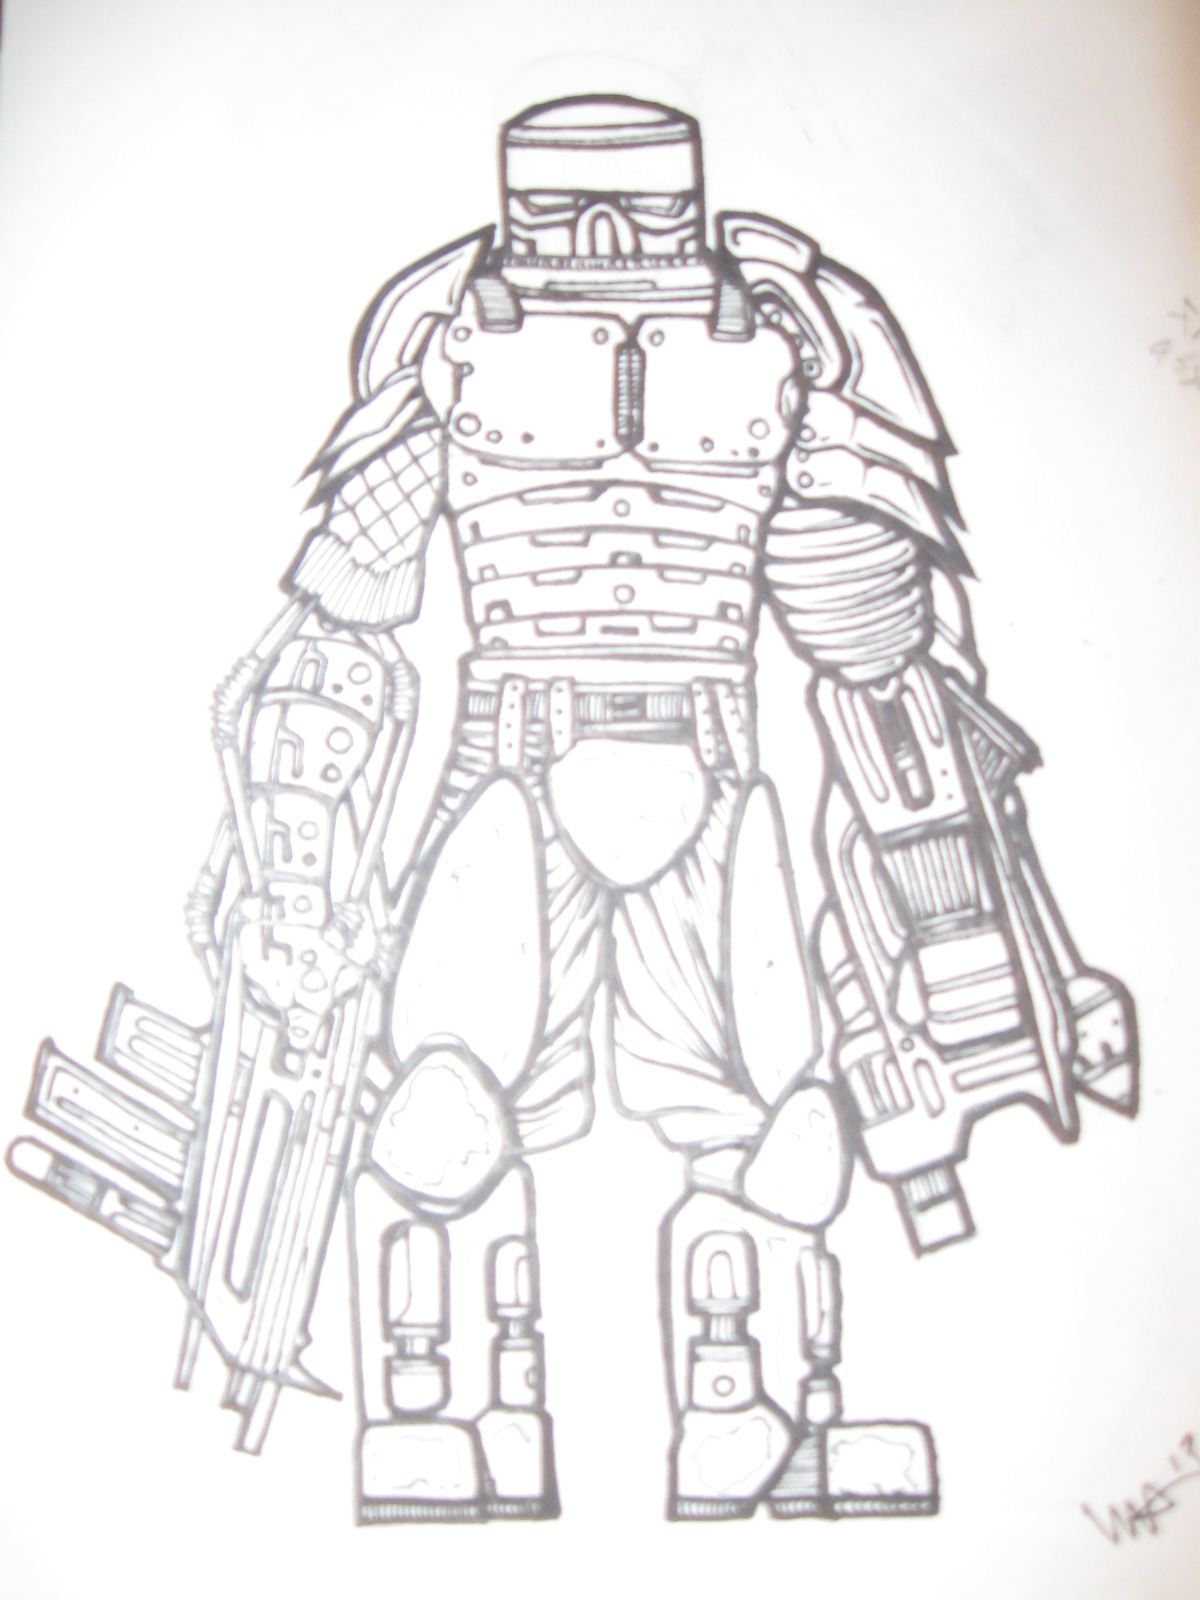 frontal assault soldier